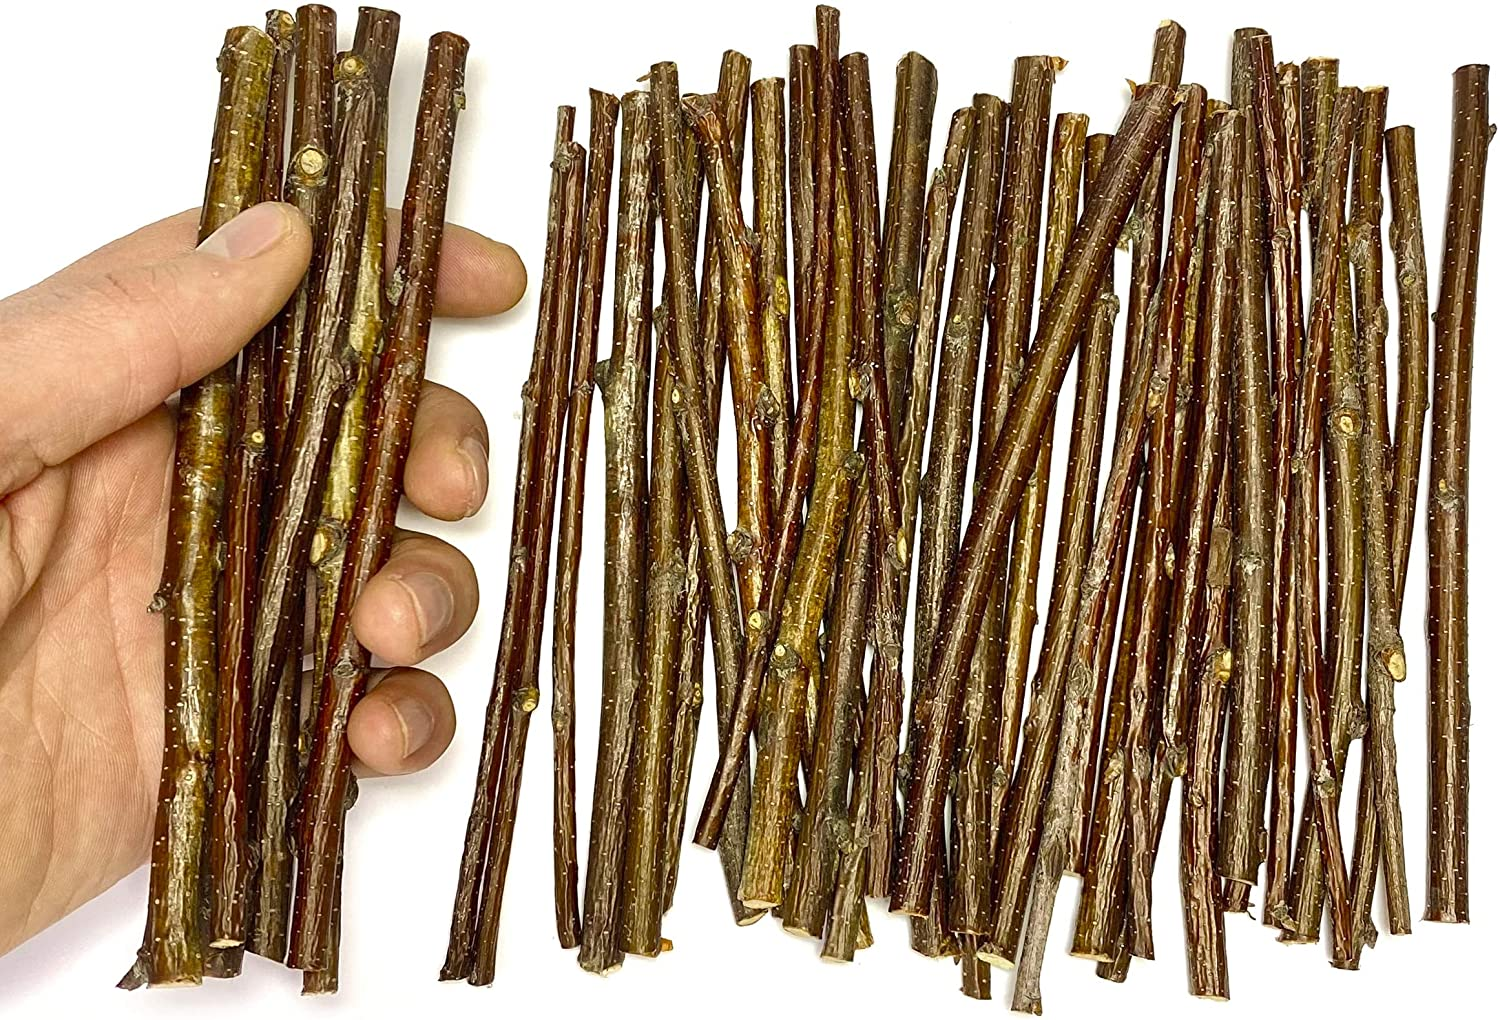 Ecovenik Wood Sticks for Crafts - 6 Inch Birch Wood Craft Sticks - Natural Twigs Sticks for Crafting, DIY School Projects, Card Making, Embellishments & Photo Props (40Pcs)